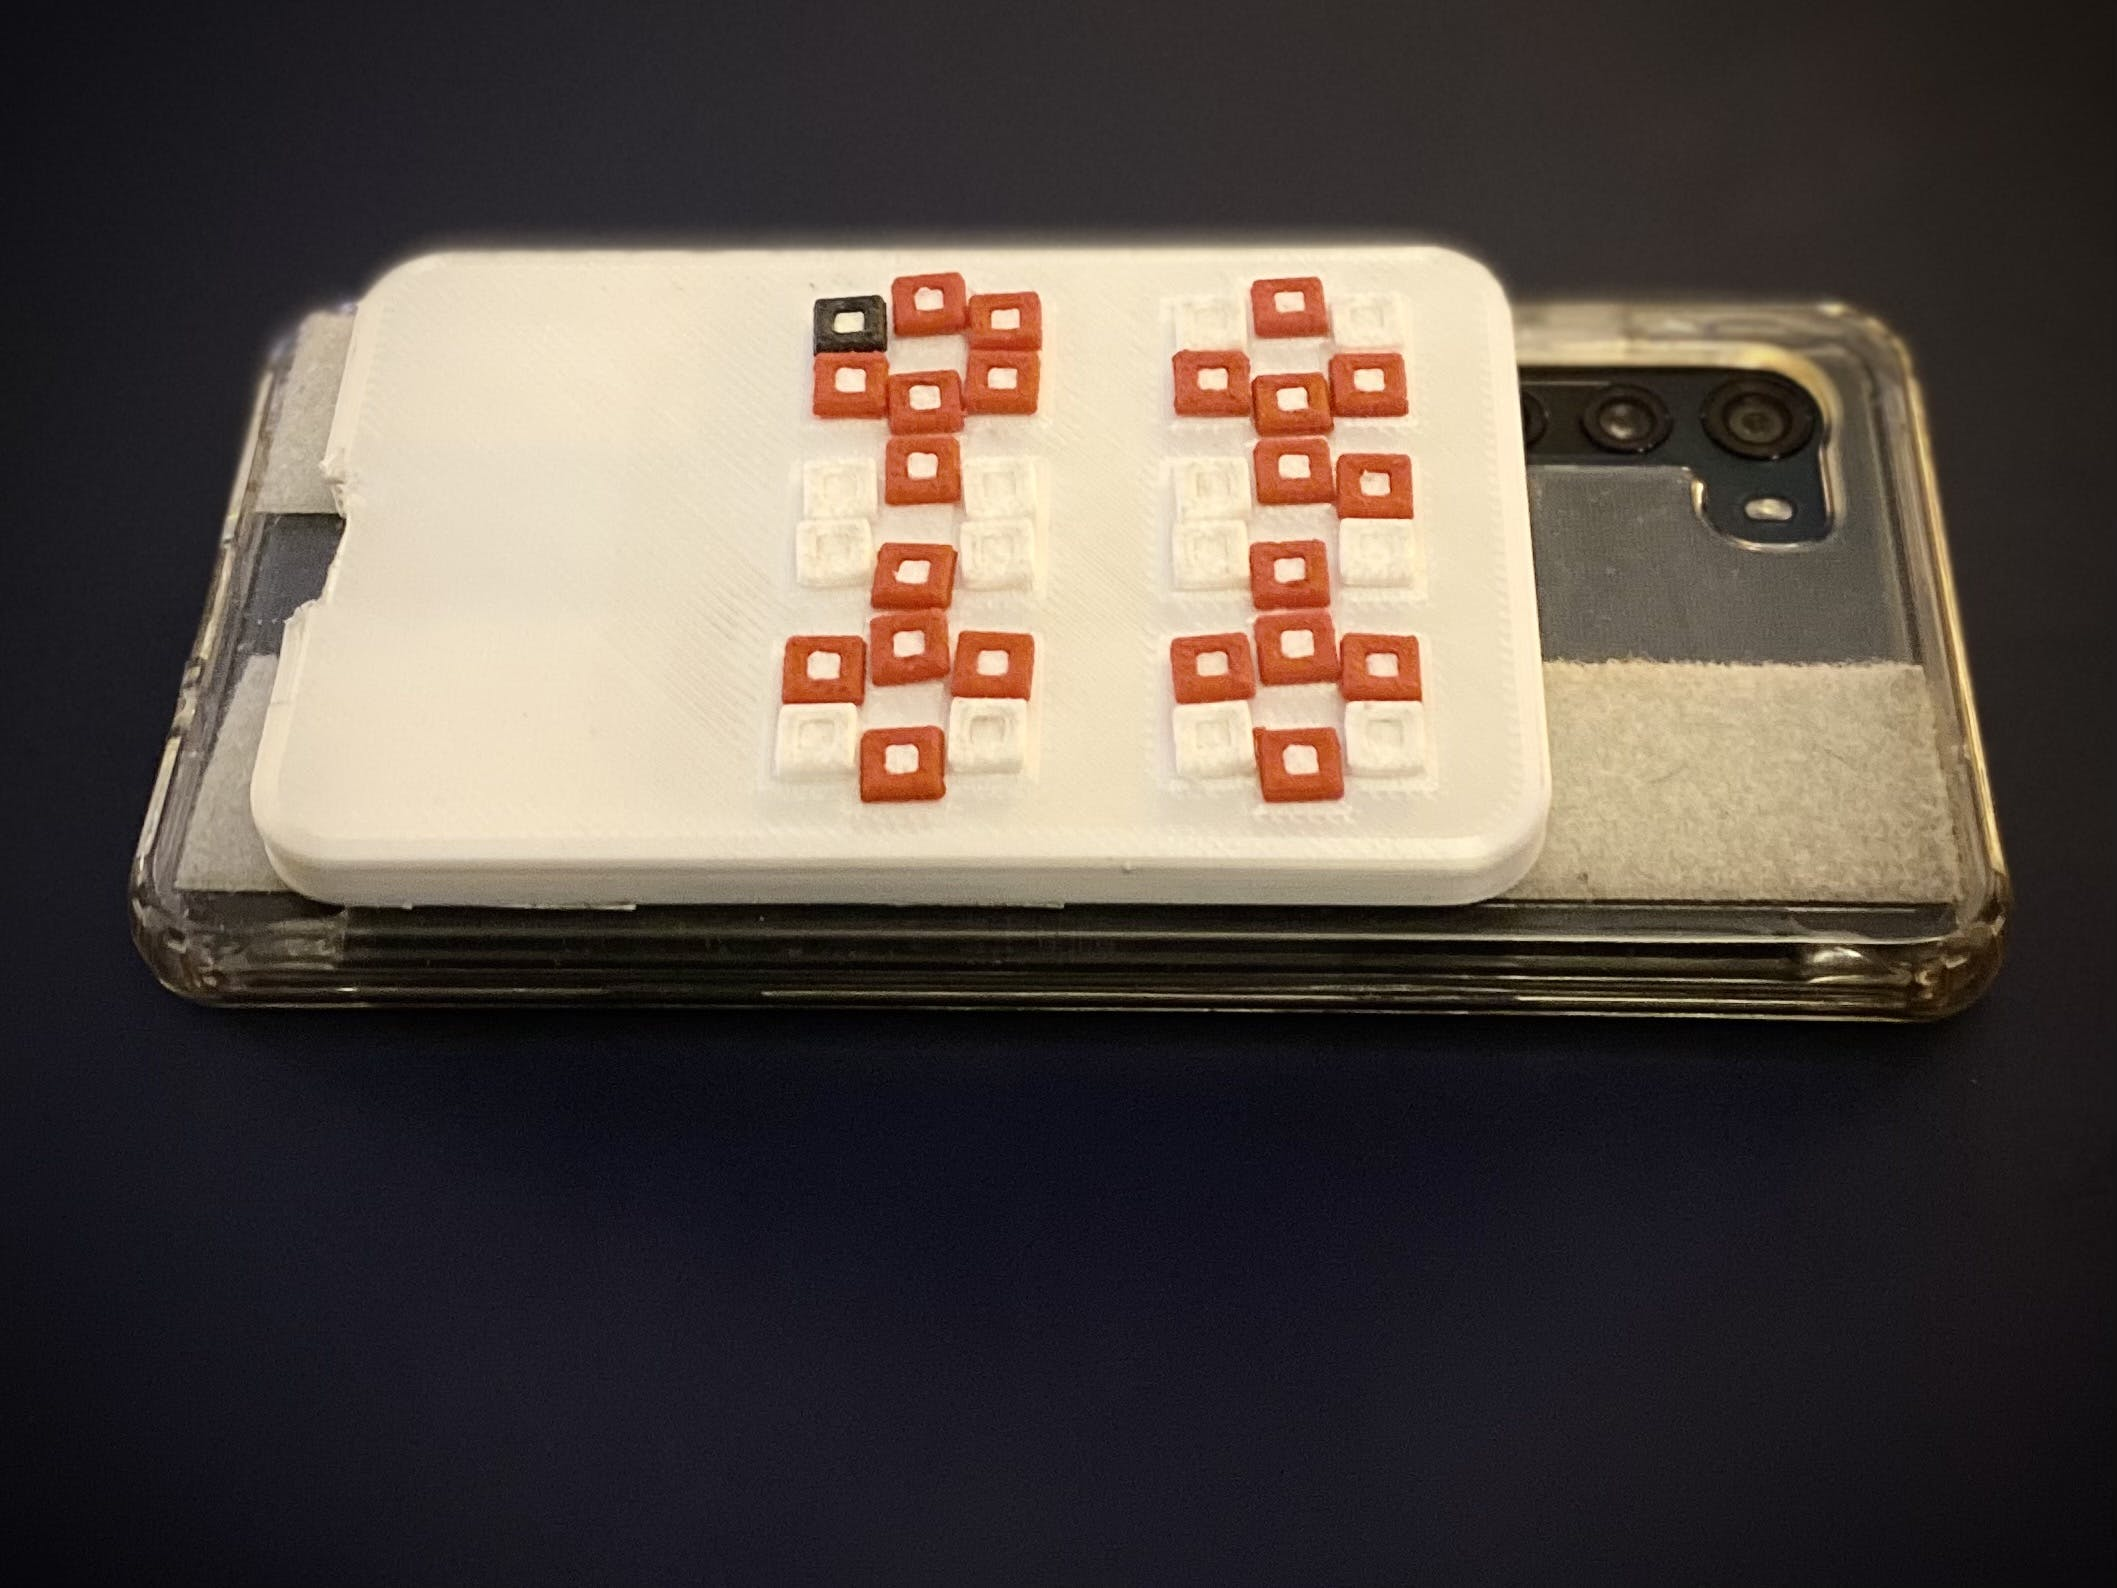 The latest iteration of mobile keyboard I've built last month and used to type this post.